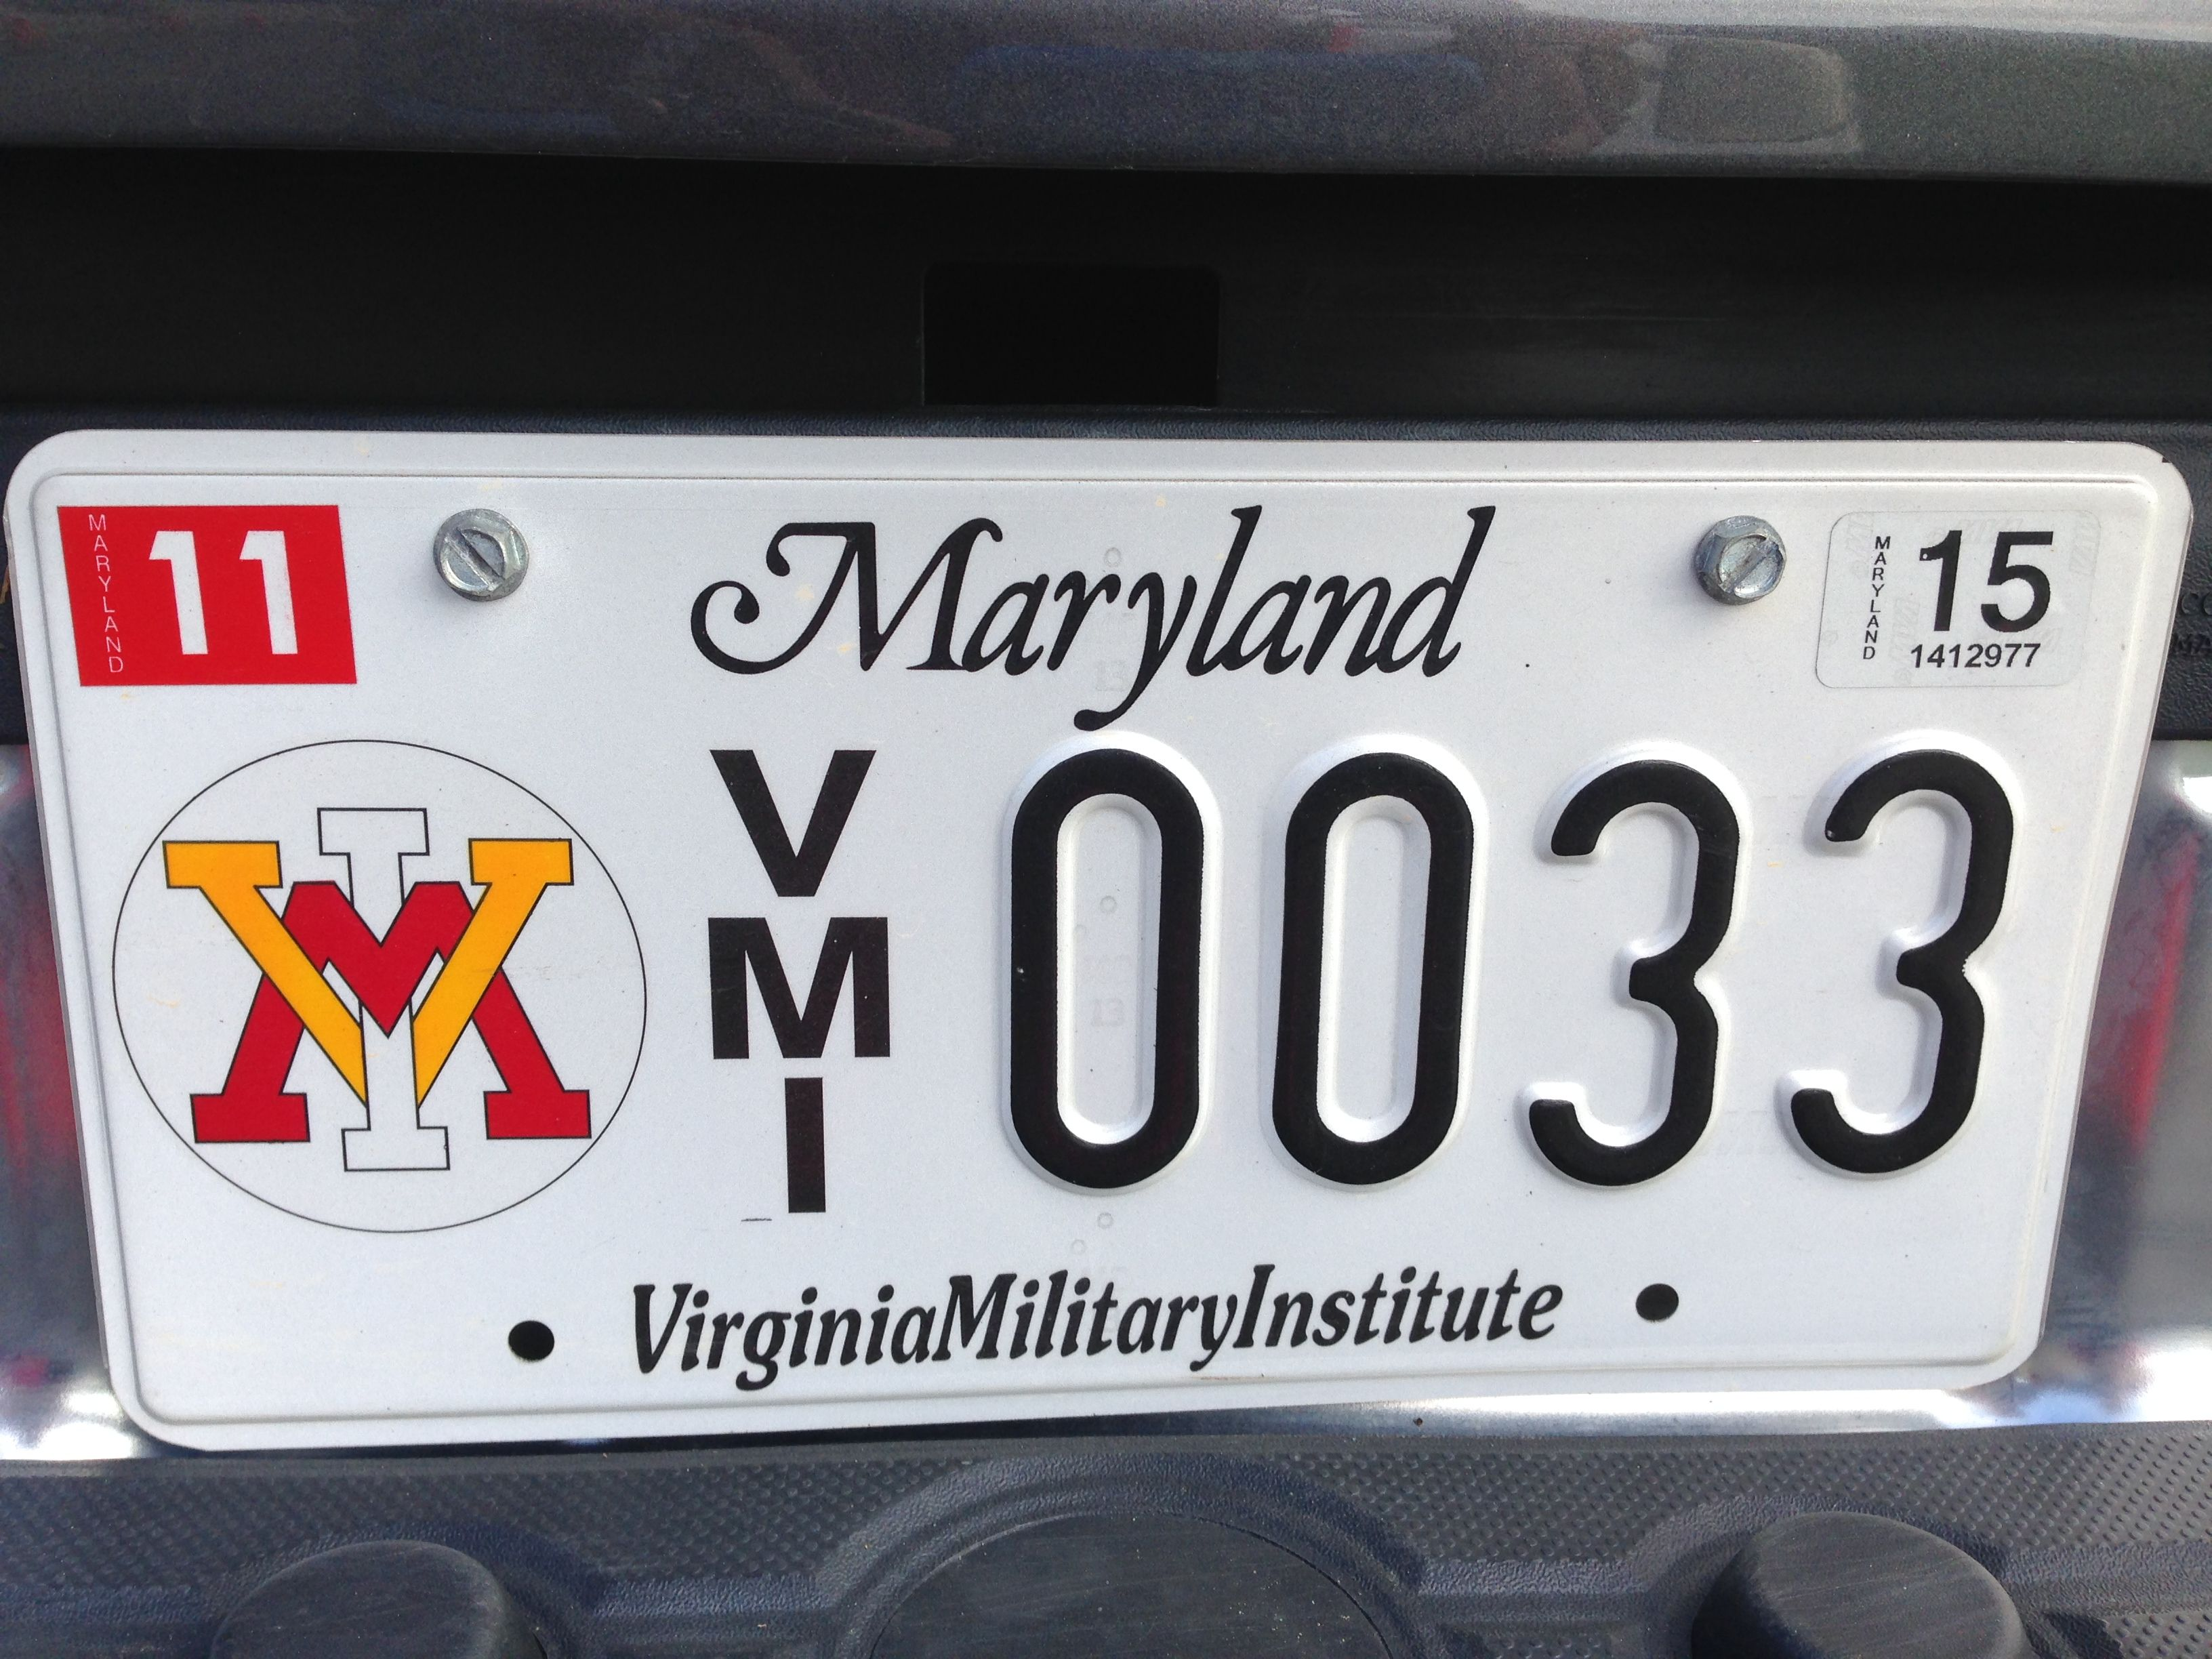 not personalized necessarily, but one of the first VMI plates in MD!  *If this is your license plate and you wish it removed, please contact the VMI Alumni Office: 800.444.1839  or feedback@vmiaa.org*